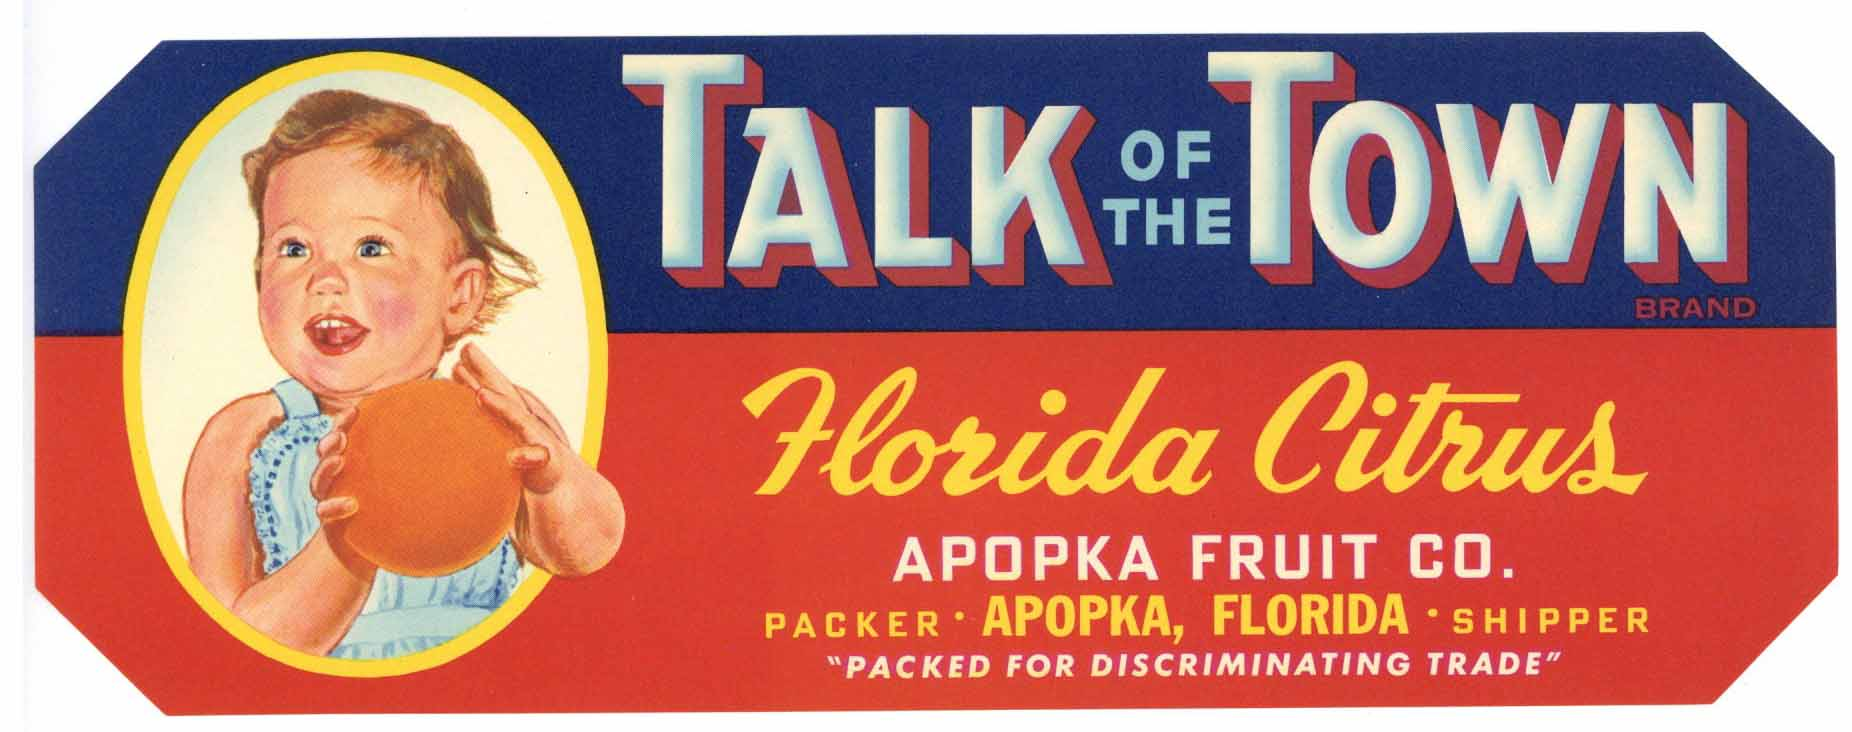 Talk Of The Town Brand Vintage Apopka Florida Citrus Crate Label